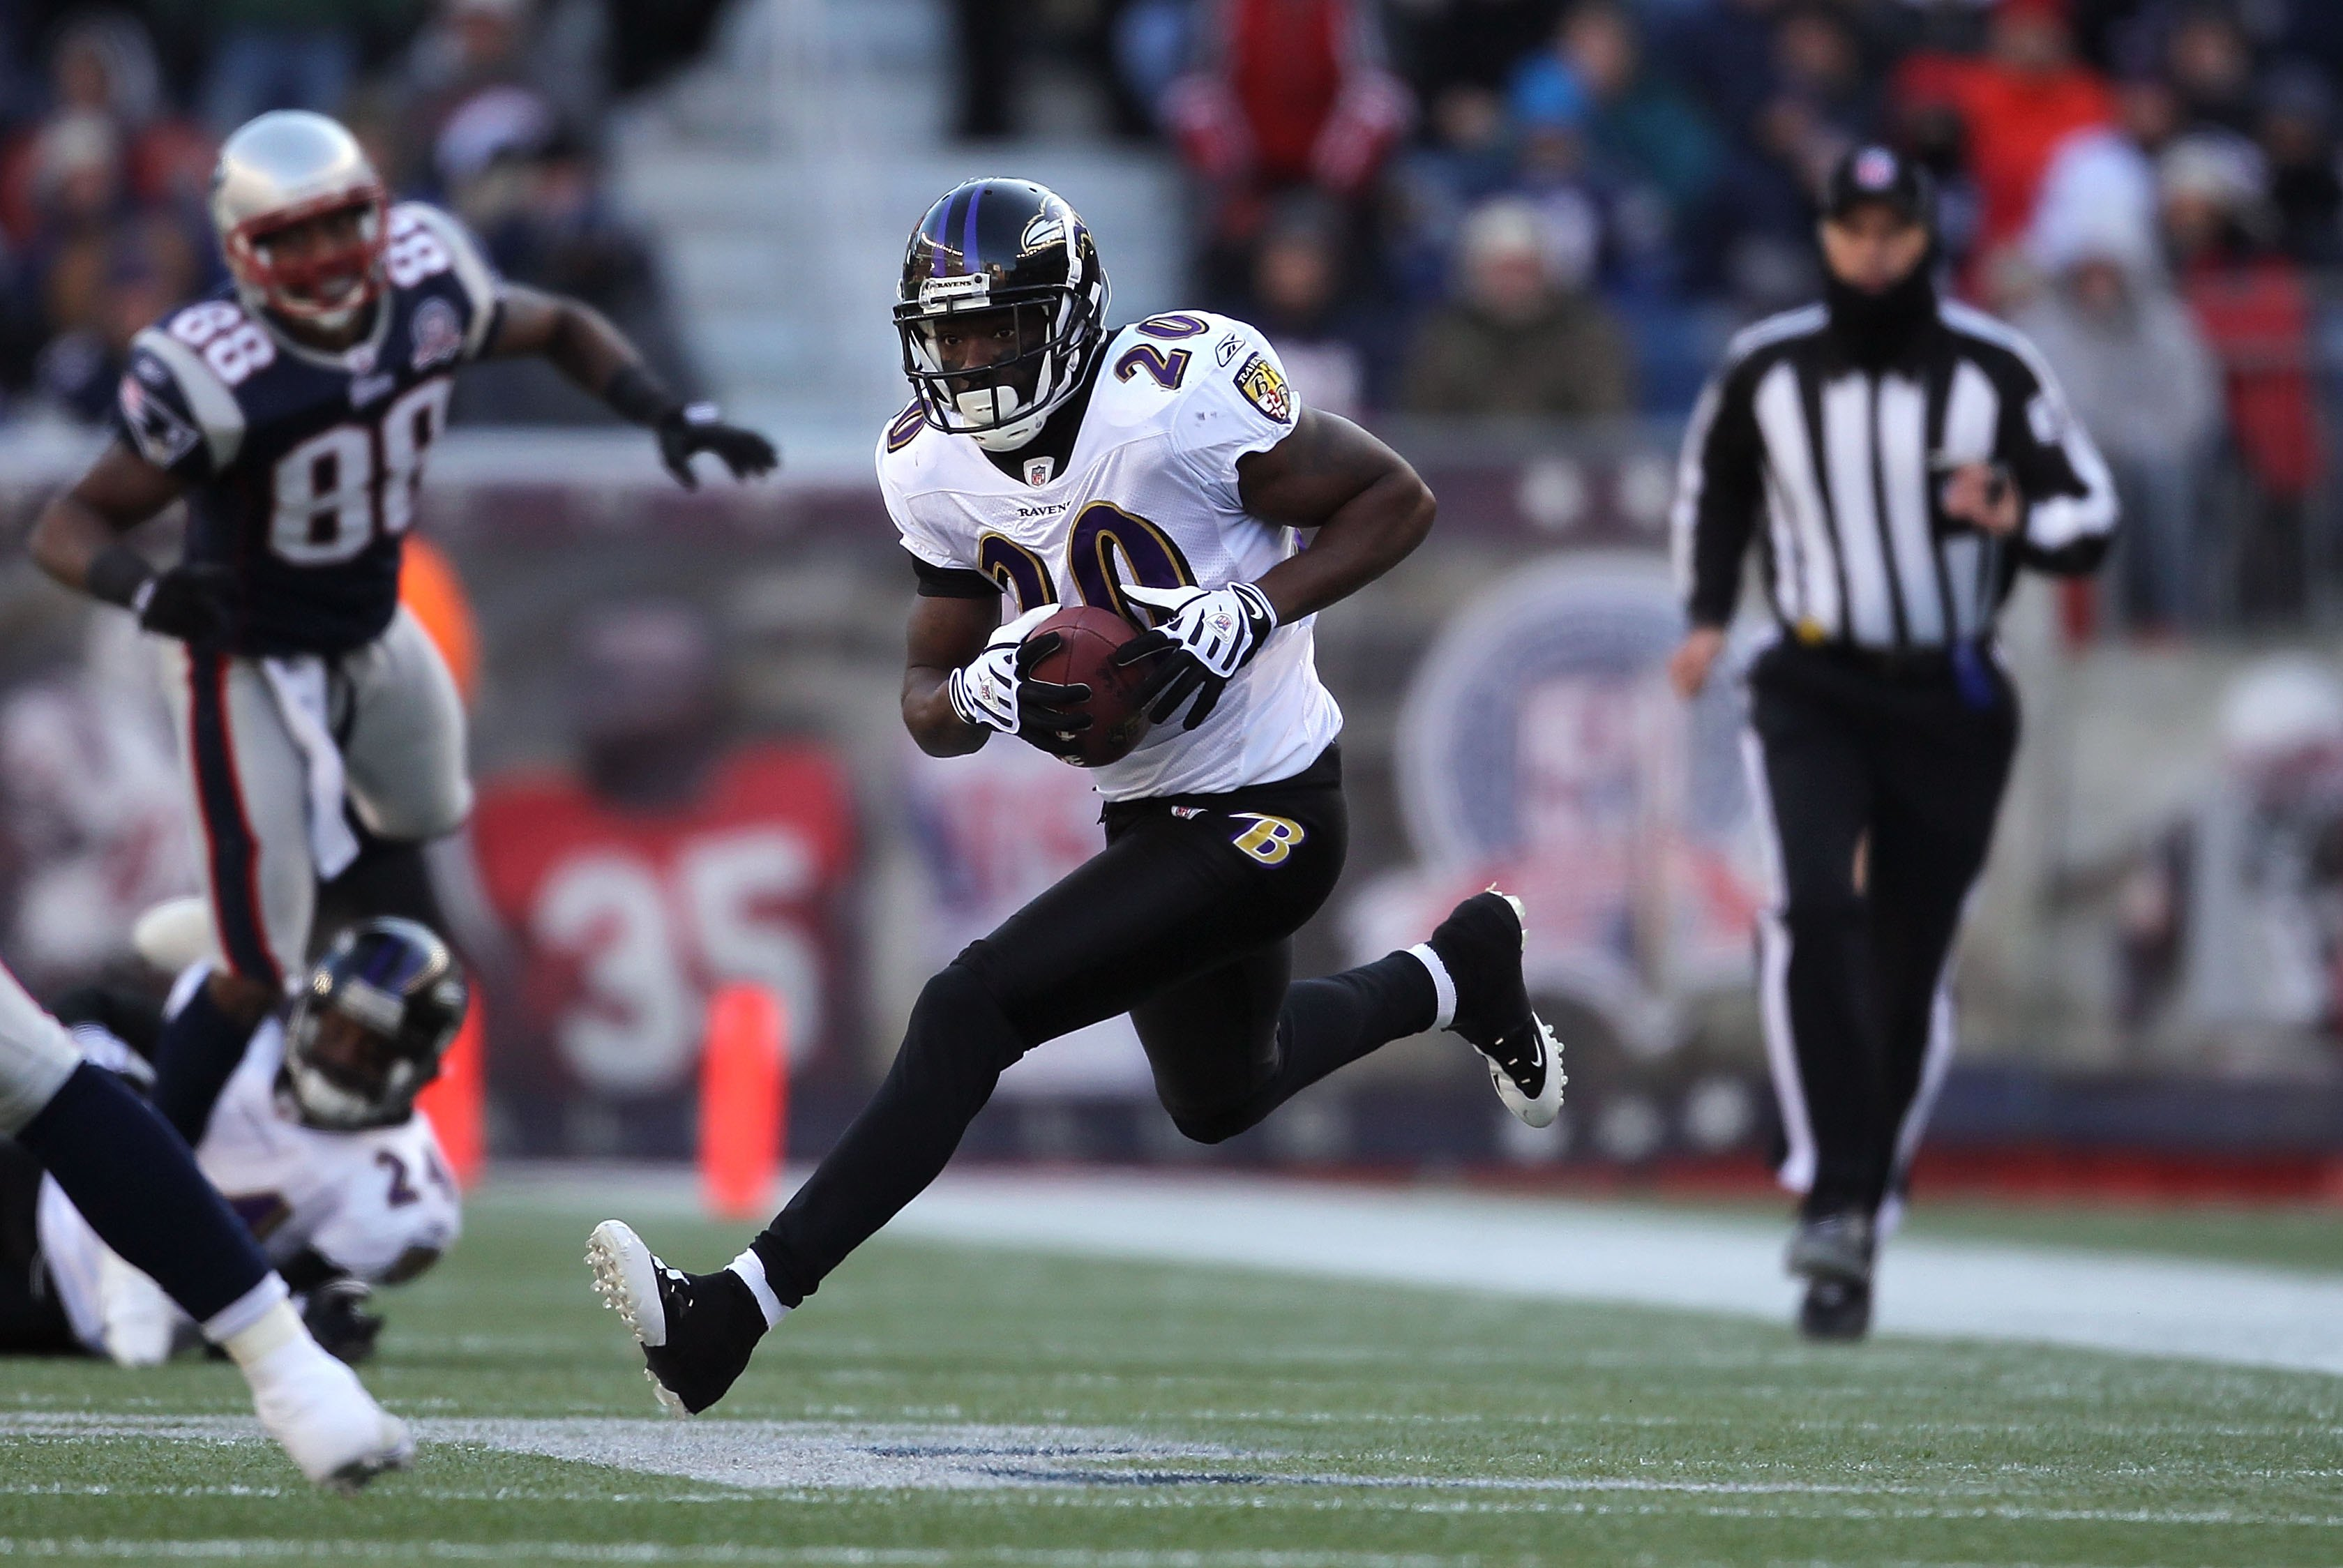 FOXBORO, MA - JANUARY 10:  Ed Reed #20 of the Baltimore Ravens intercepts a pass in the first quarter against the New England Patriots during the 2010 AFC wild-card playoff game at Gillette Stadium on January 10, 2010 in Foxboro, Massachusetts. The Ravens